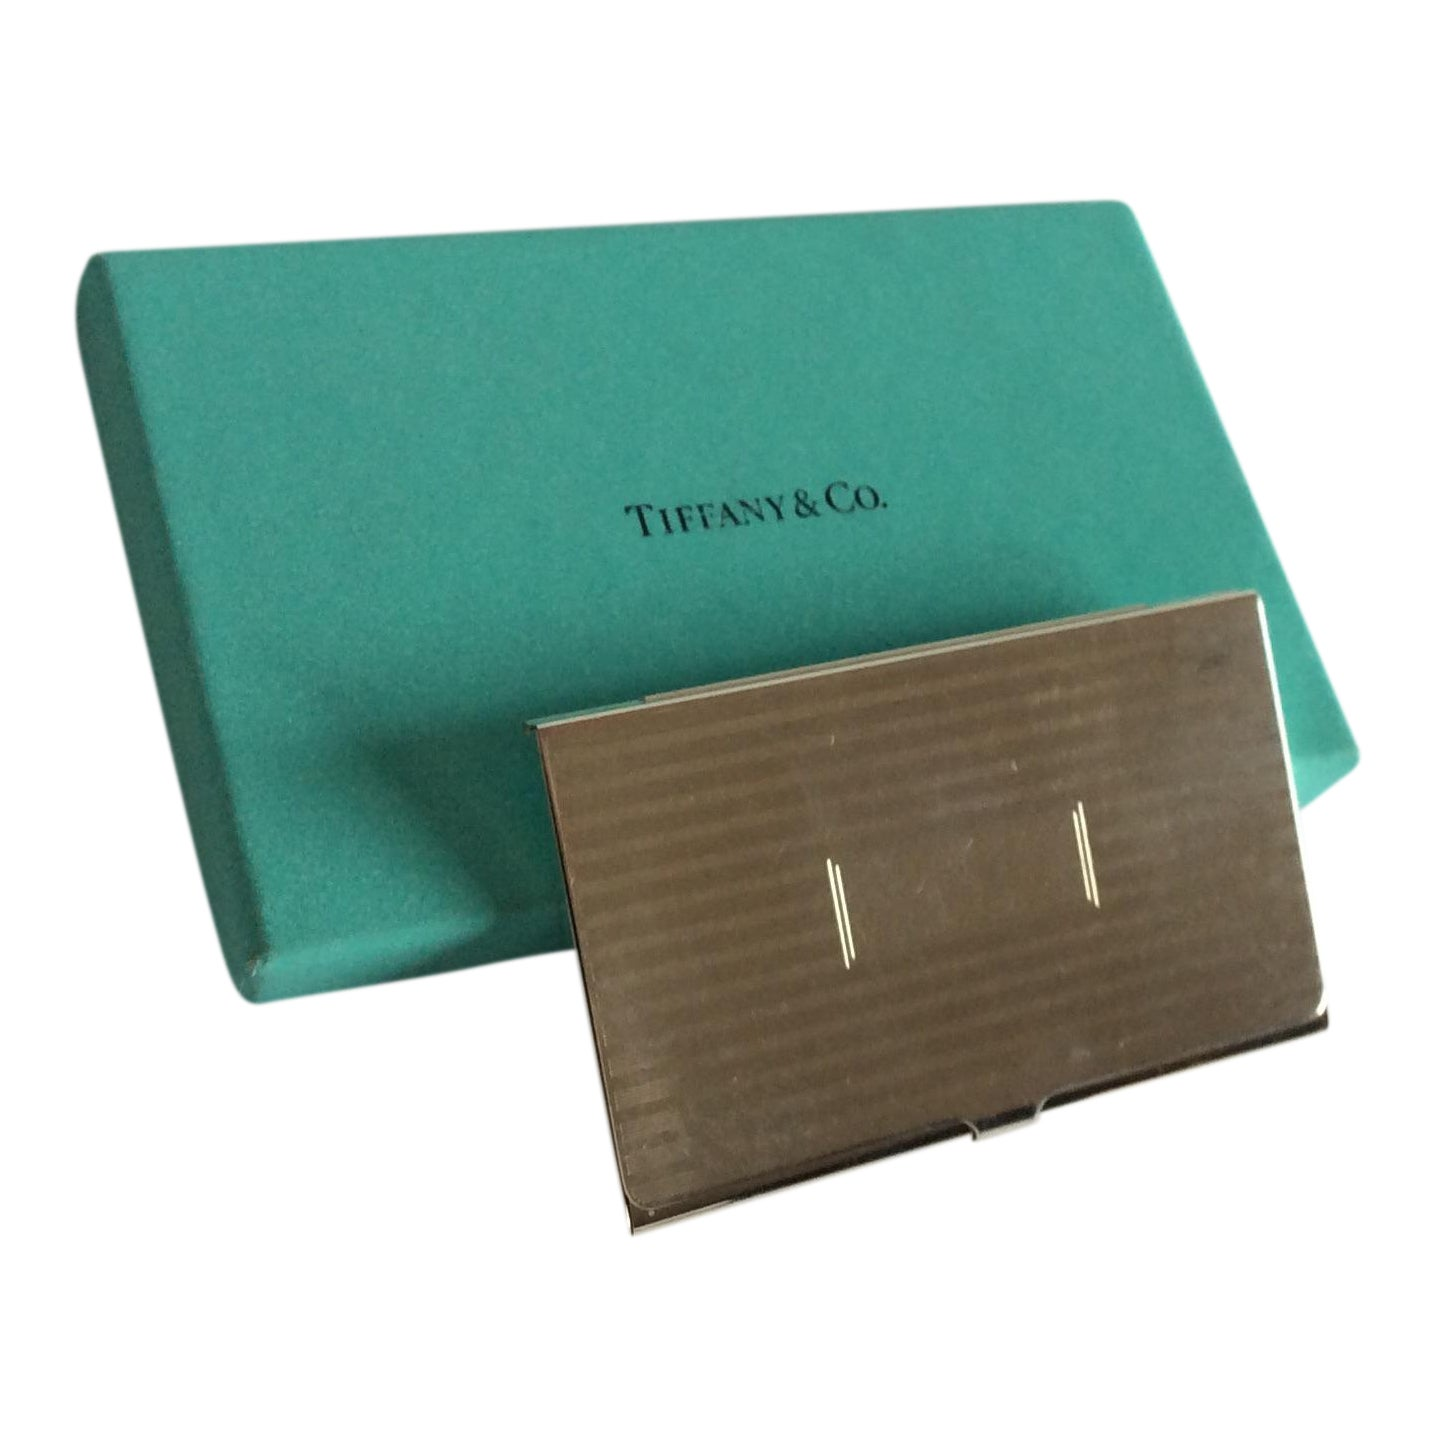 Tiffany Sterling Silver Business Card Case | Chairish